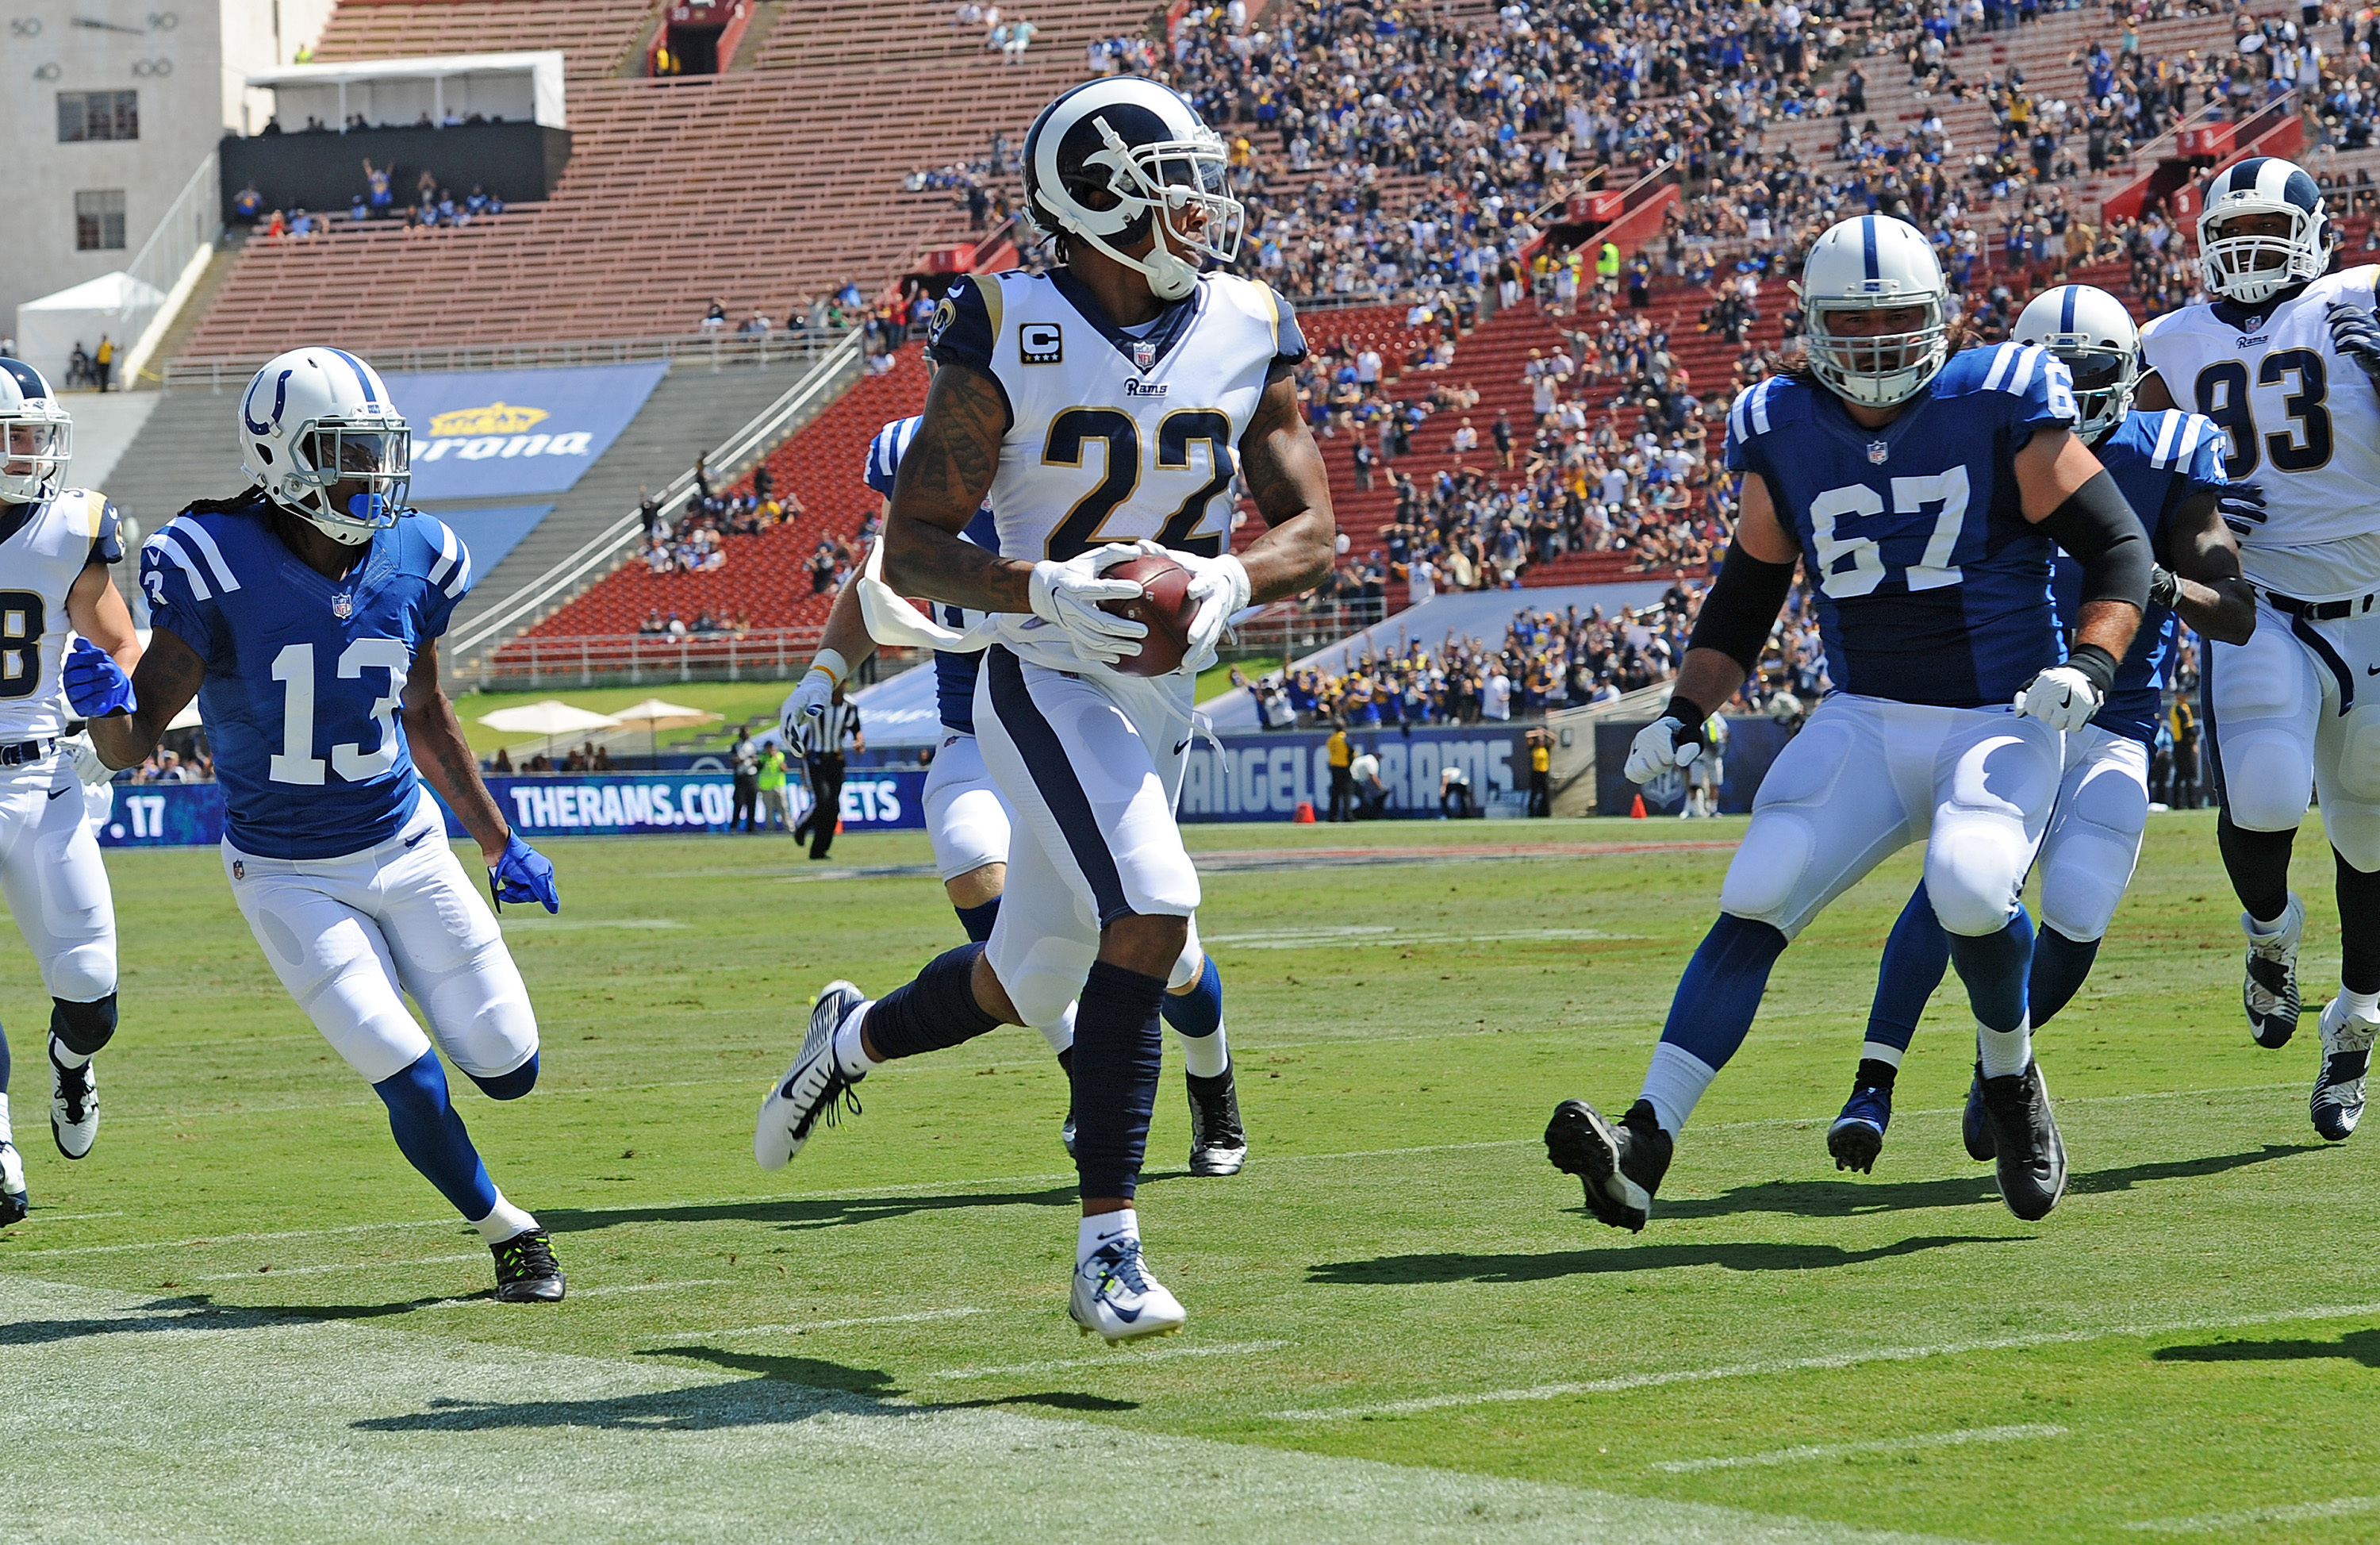 Los Angeles Rams cornerback Trumaine Johnson intercepts a pass for a touchdown in front of Indianapolis Colts receiver T.Y. Hilton (13) in the first quarter on Sunday, Sept. 10, 2017 at the Coliseum in Los Angeles, Calif. (Wally Skalij/Los Angeles Times/TNS)